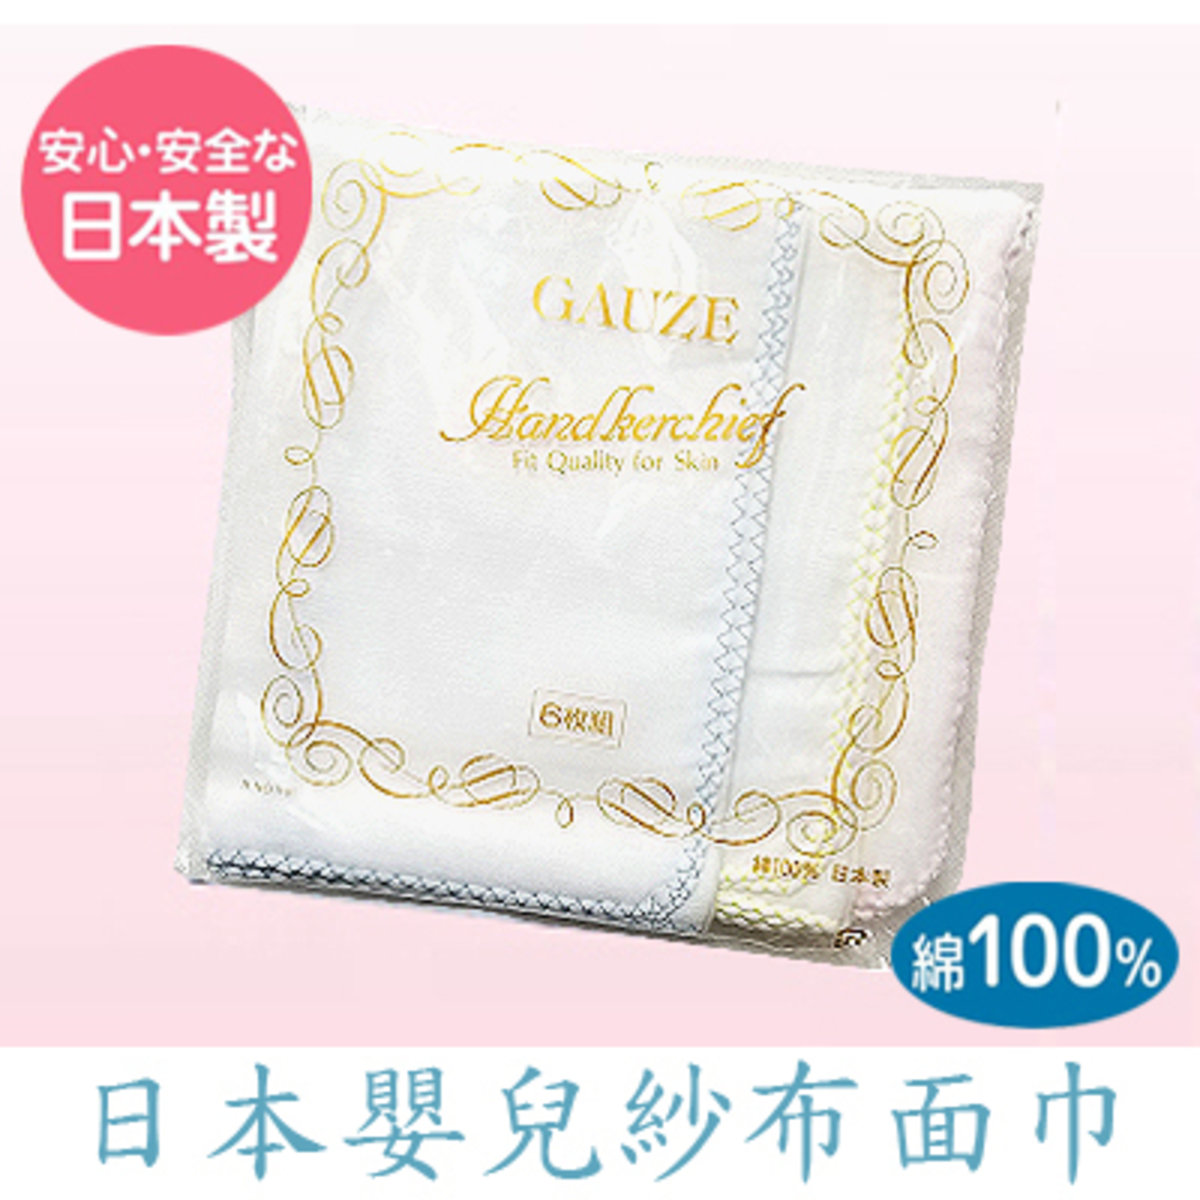 Baby gauze face towel (6pcs)